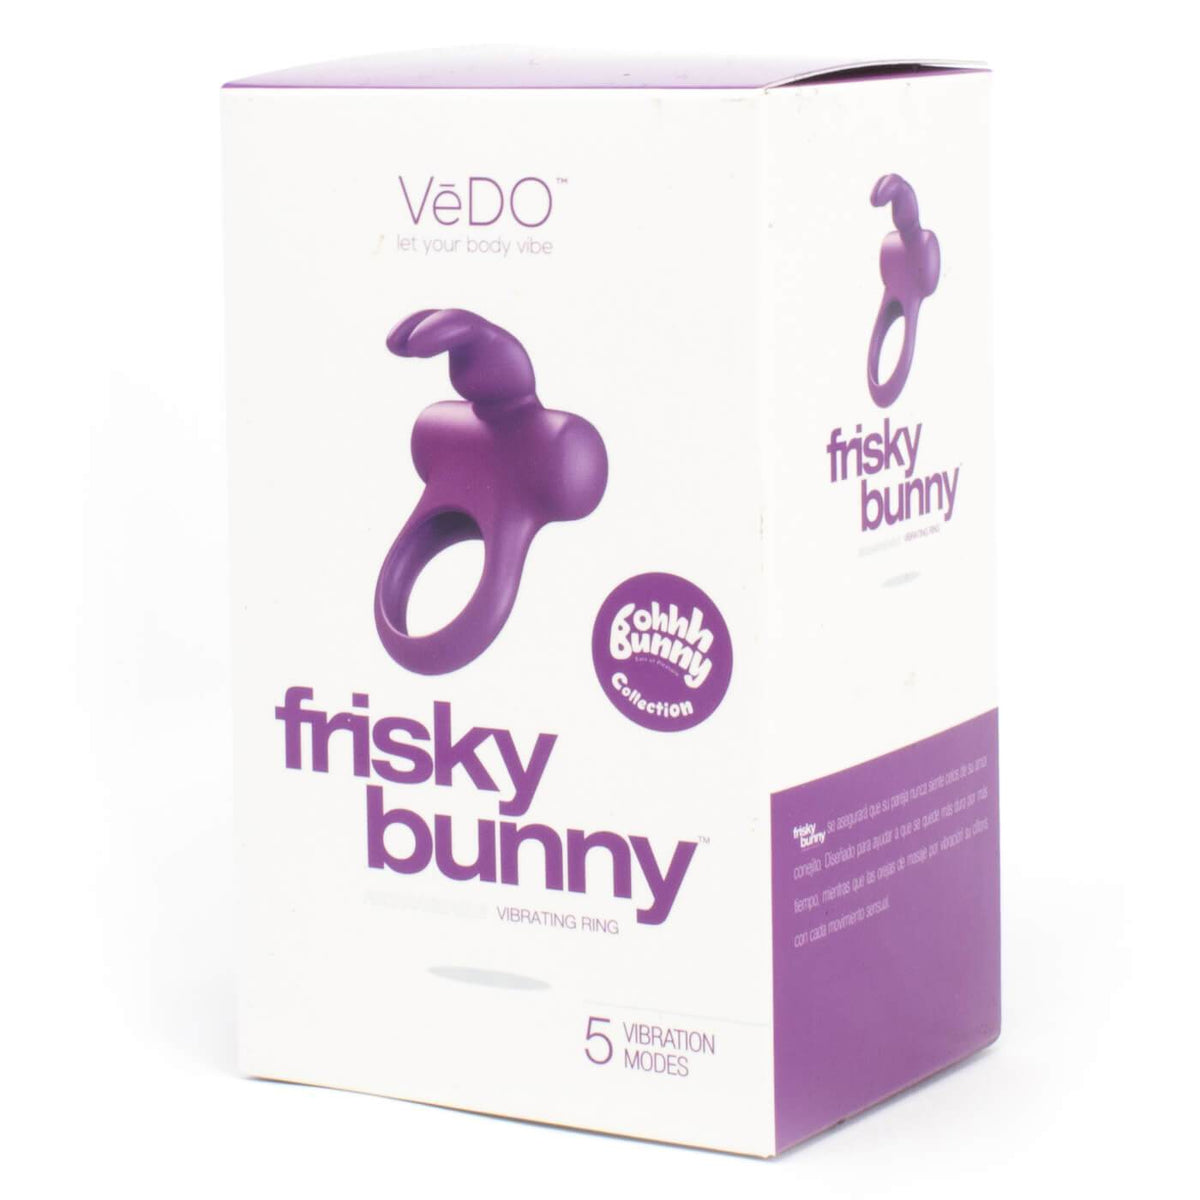 Vedo Frisky Bunny Extra Quiet 5 Function Powerful Vibrating Ring